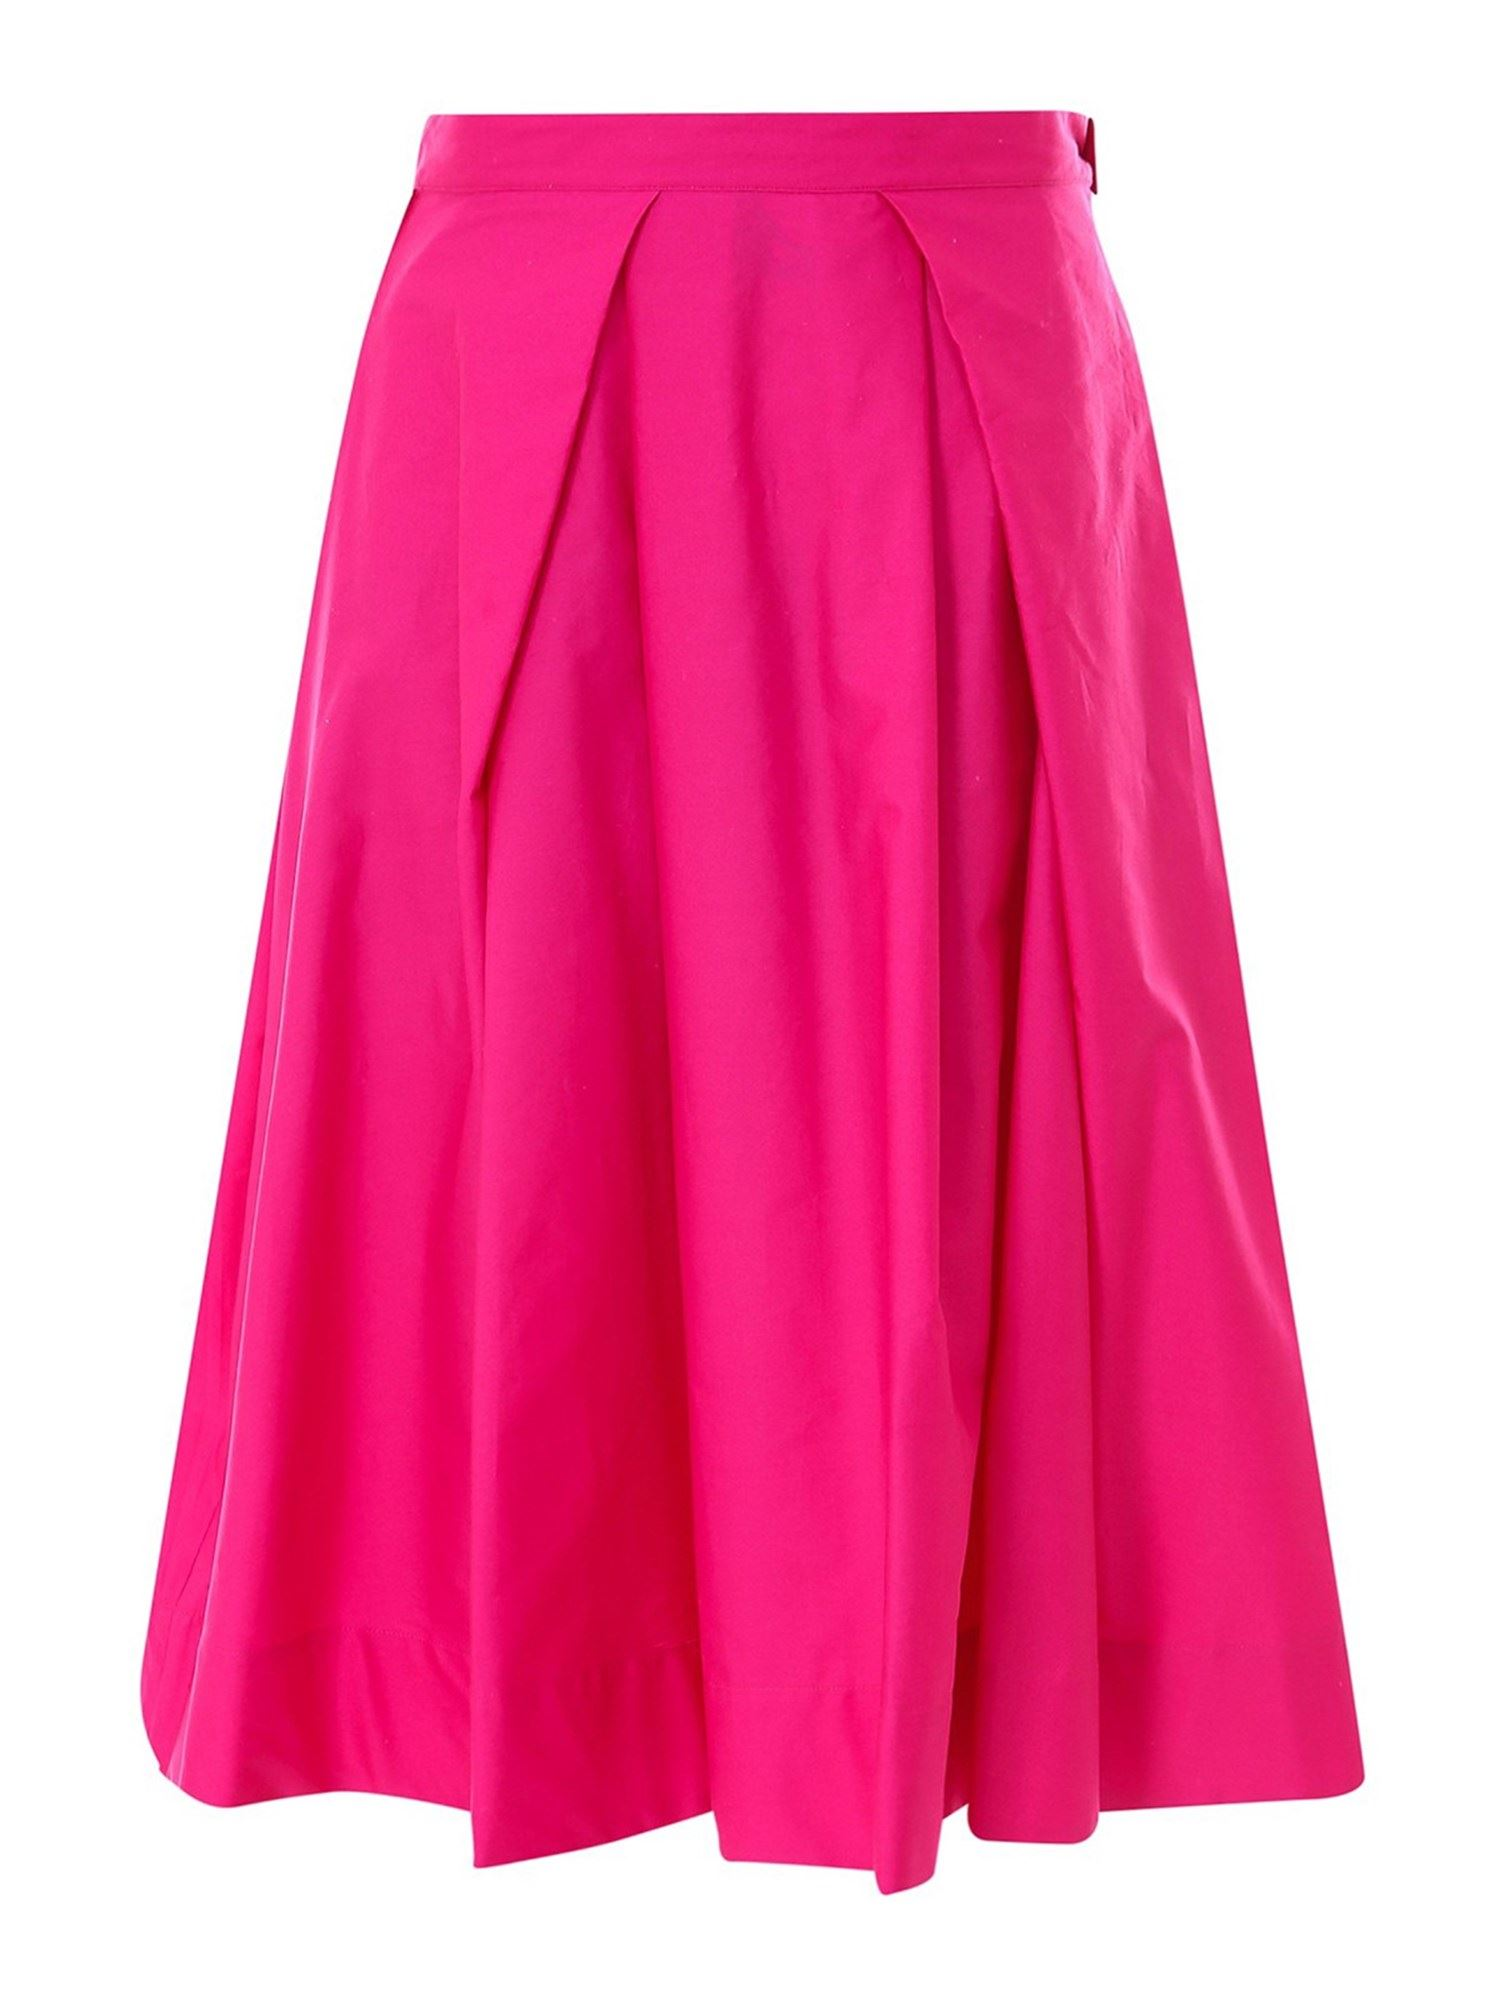 Marni COTTON POPLIN FULL SKIRT IN FUCHSIA